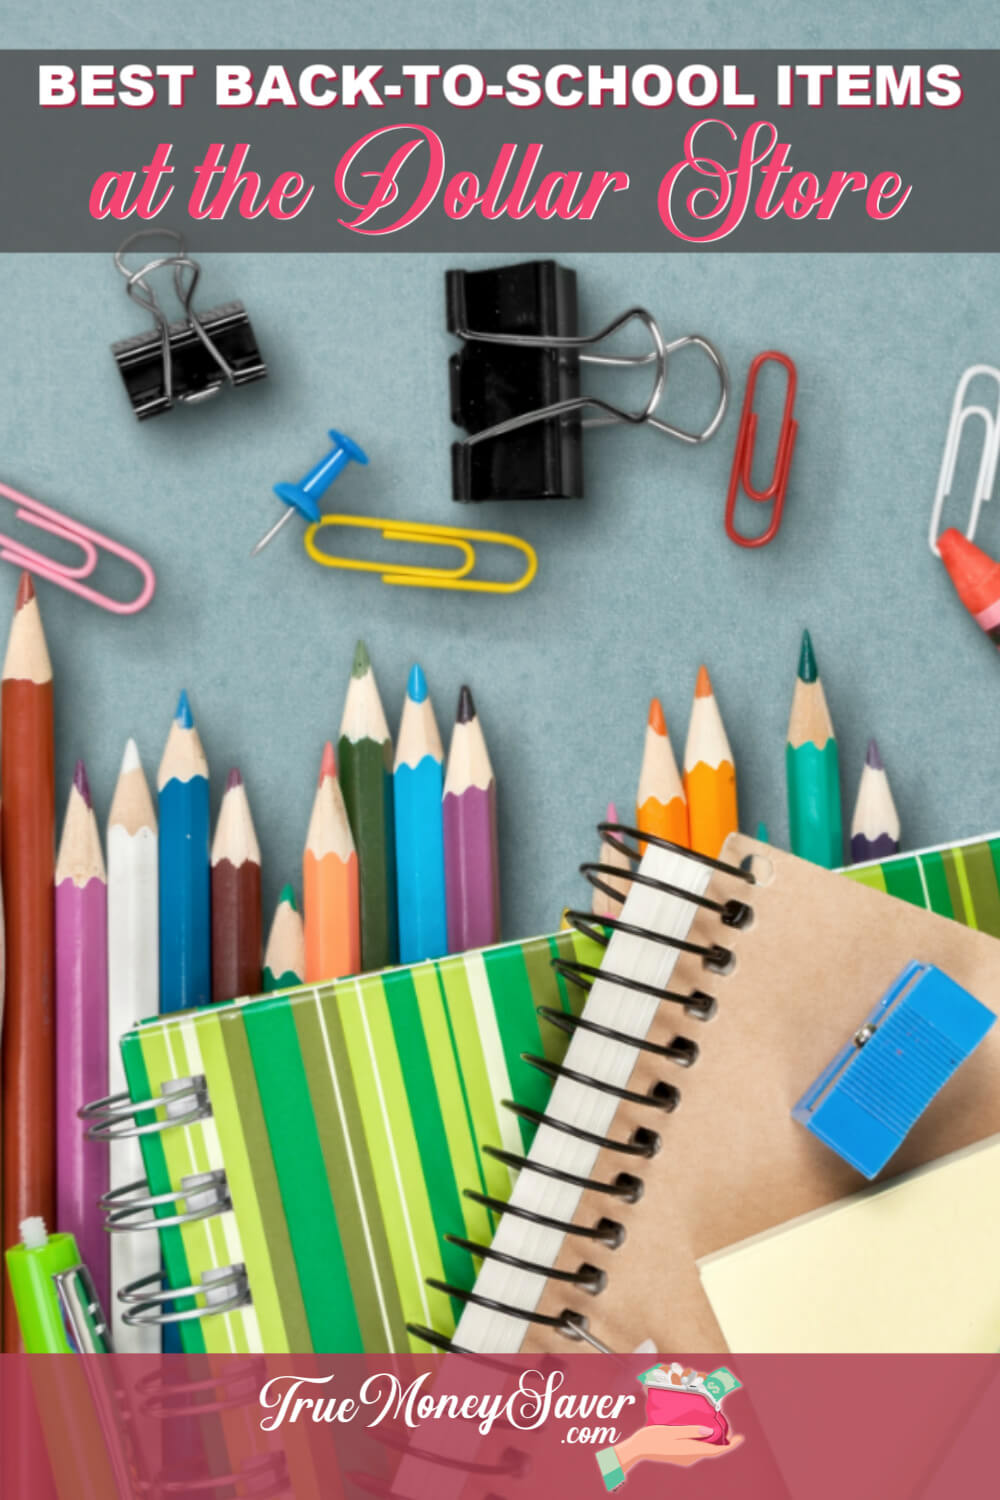 Your children's Back to School shopping list can drain your budget. My Back to School supplies list tip is to first stop at the Dollar Store and save BIG on all your fun school supplies list needs! #backtoschool #backtoschoolshopping #schoolsupplies #couponcommunity  #truemoneysaver